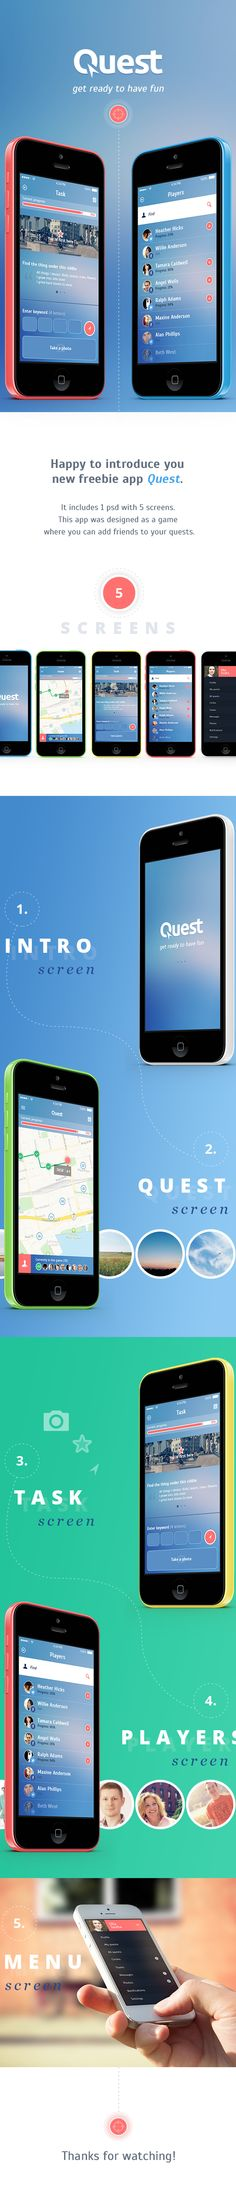 Quest. Free iOS7 App by Olia Gozha, via Behance